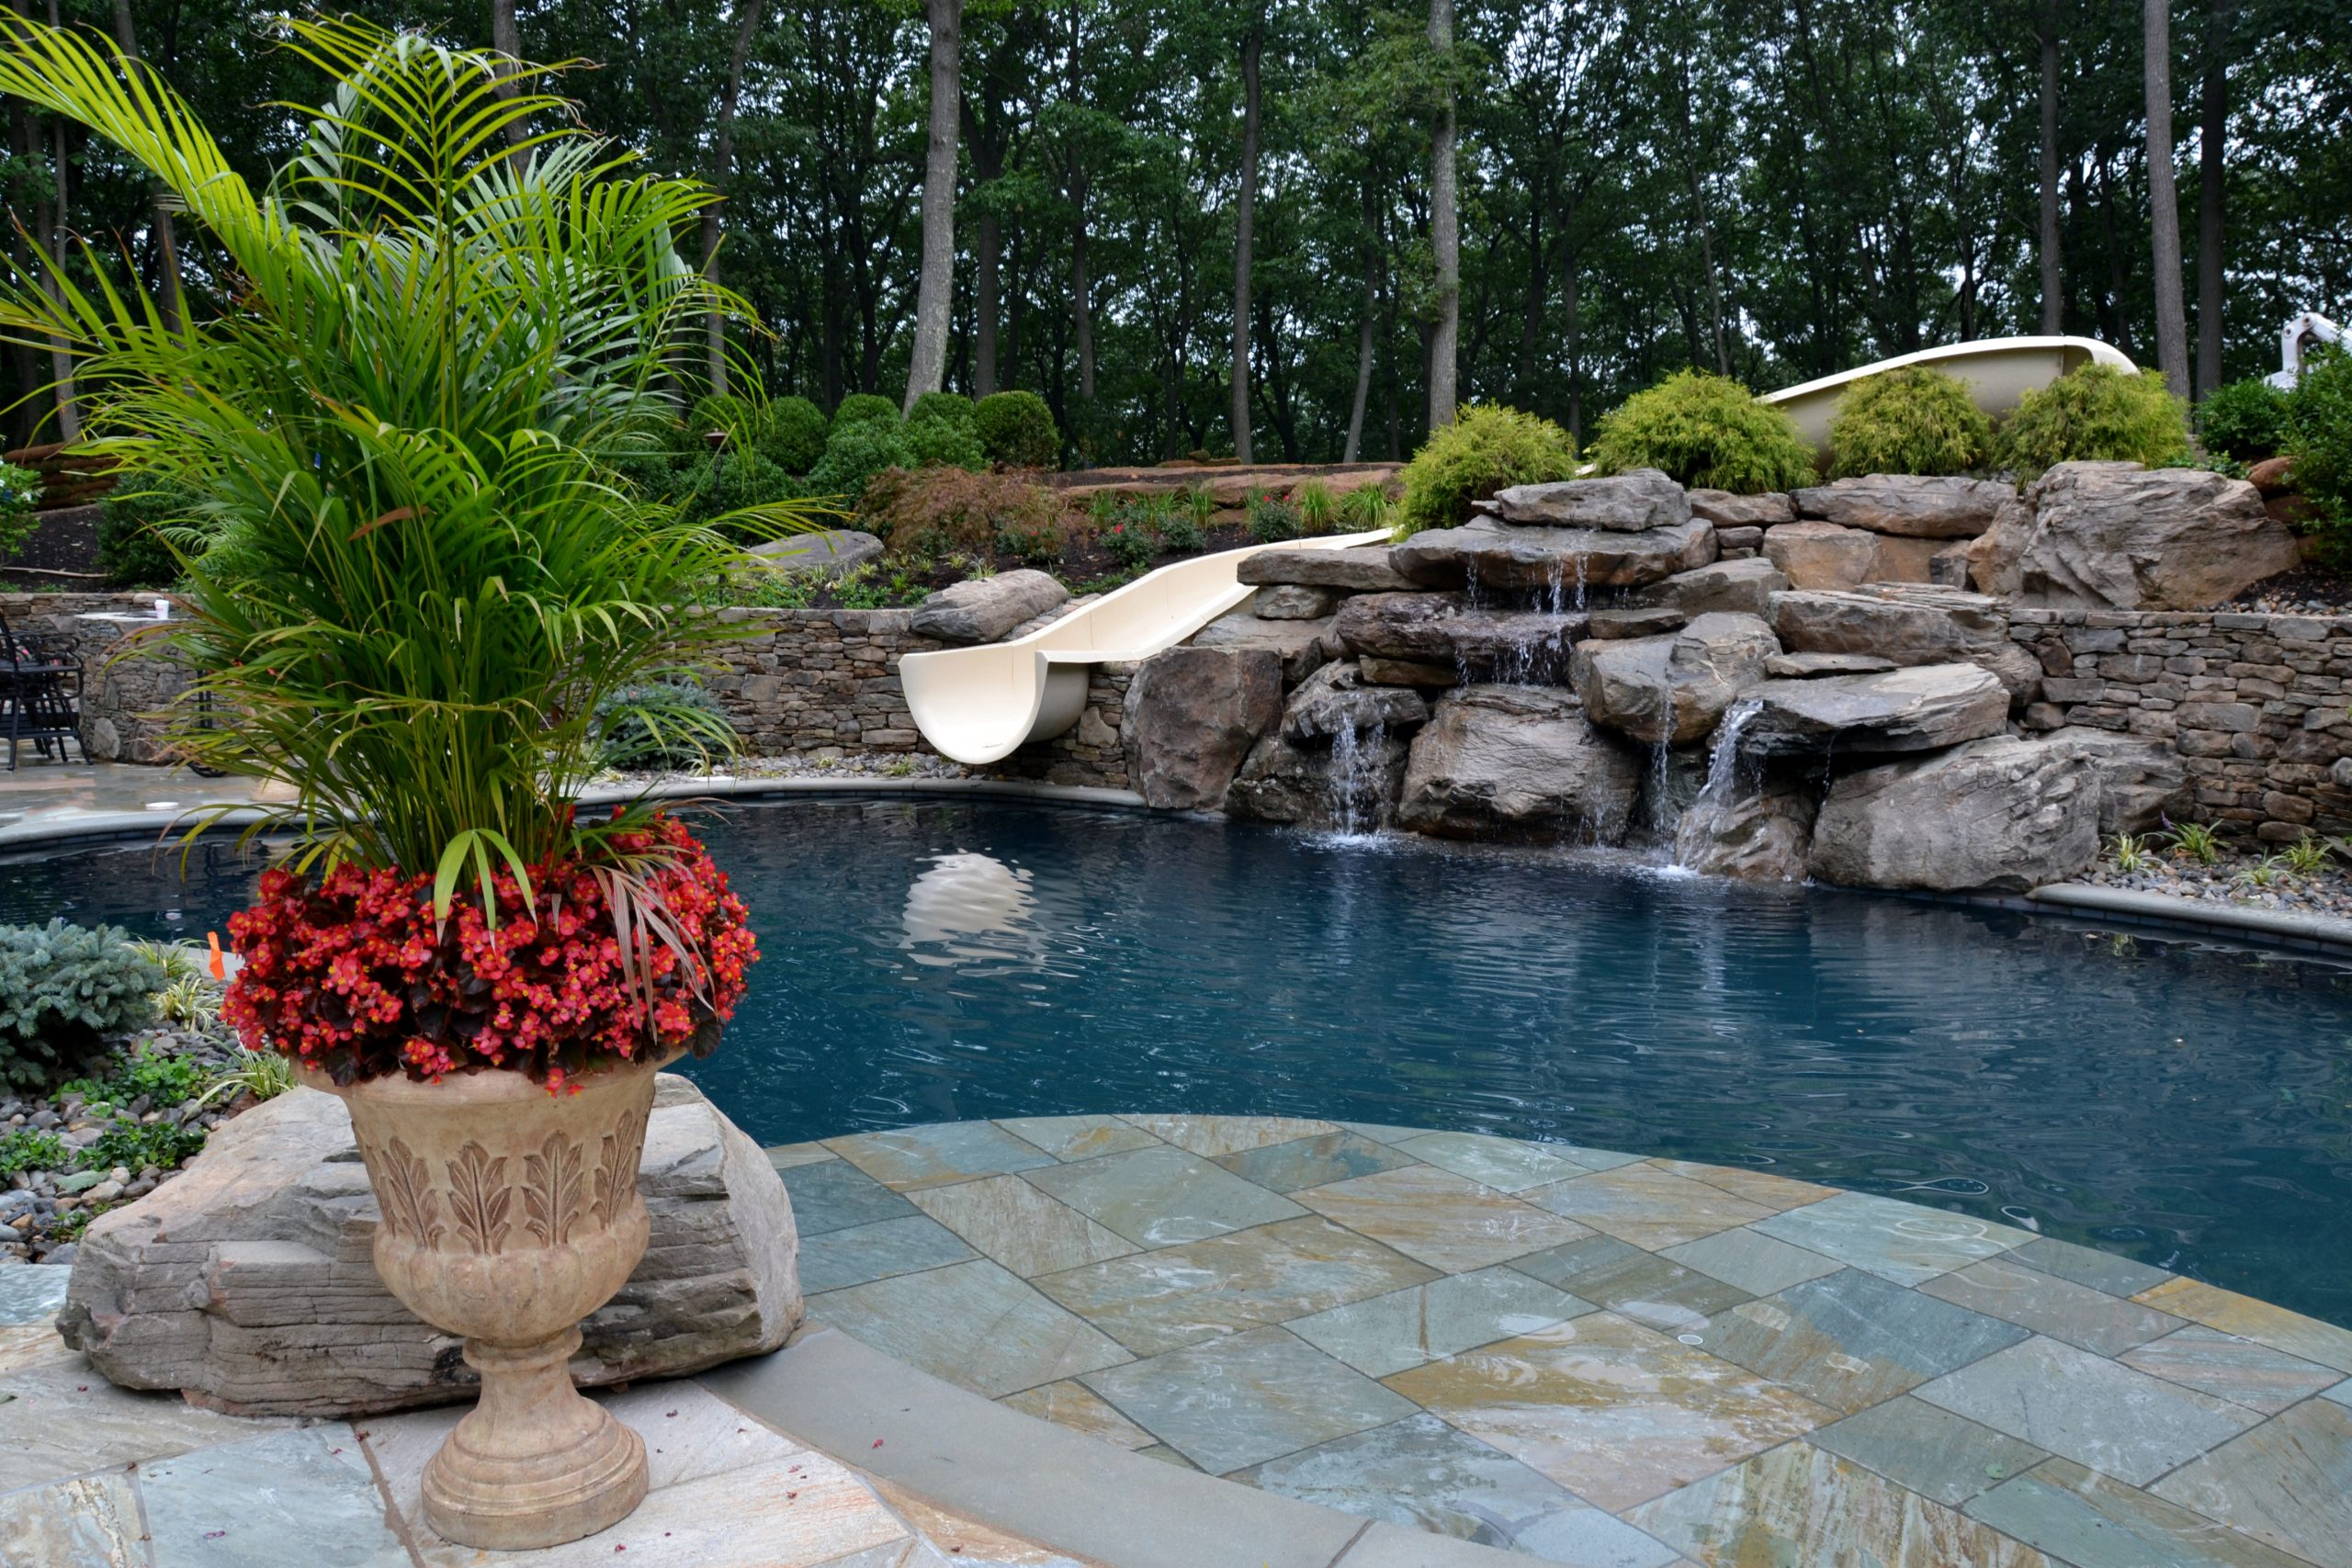 Pool Features to Consider